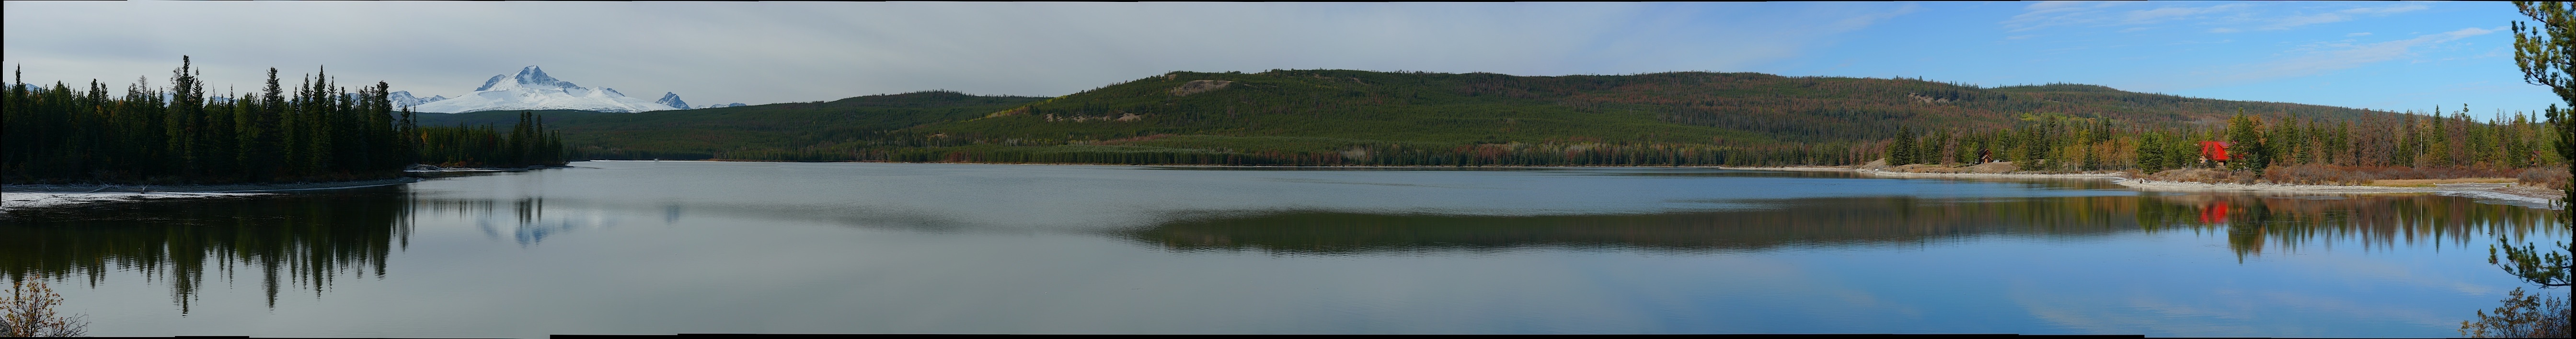 Big Lake, Mount Tatlow.-10.jpg